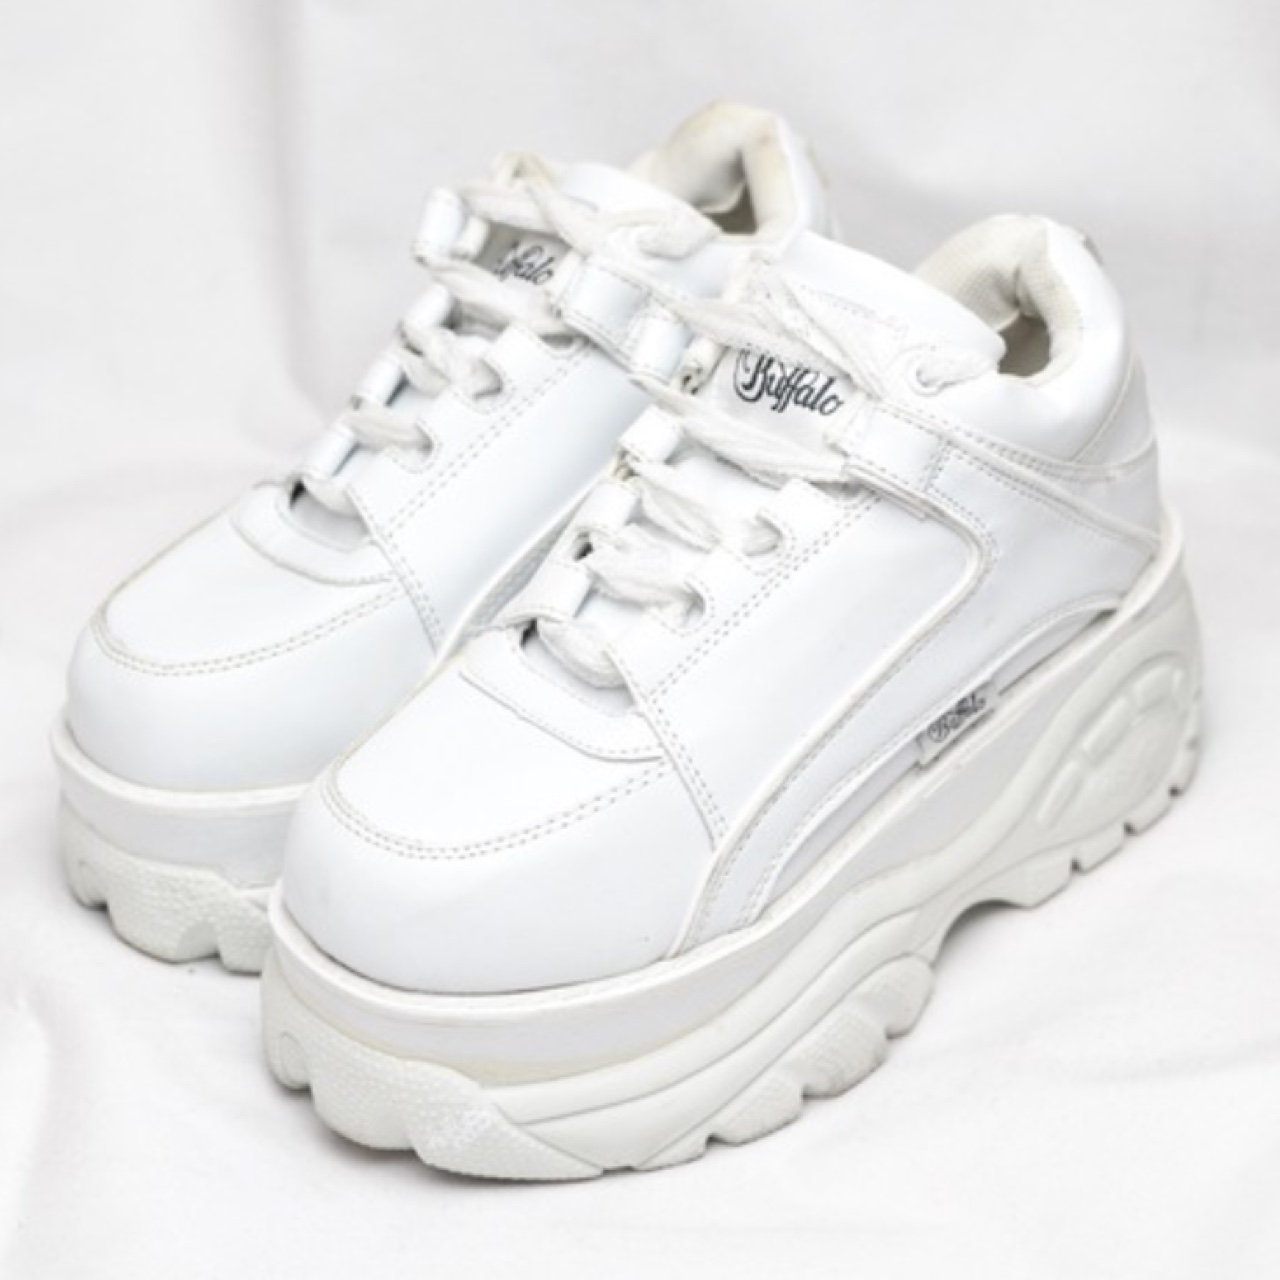 pretty nice 43b15 3c892 All white Buffalo Classics Only worn once!! Size... - Depop